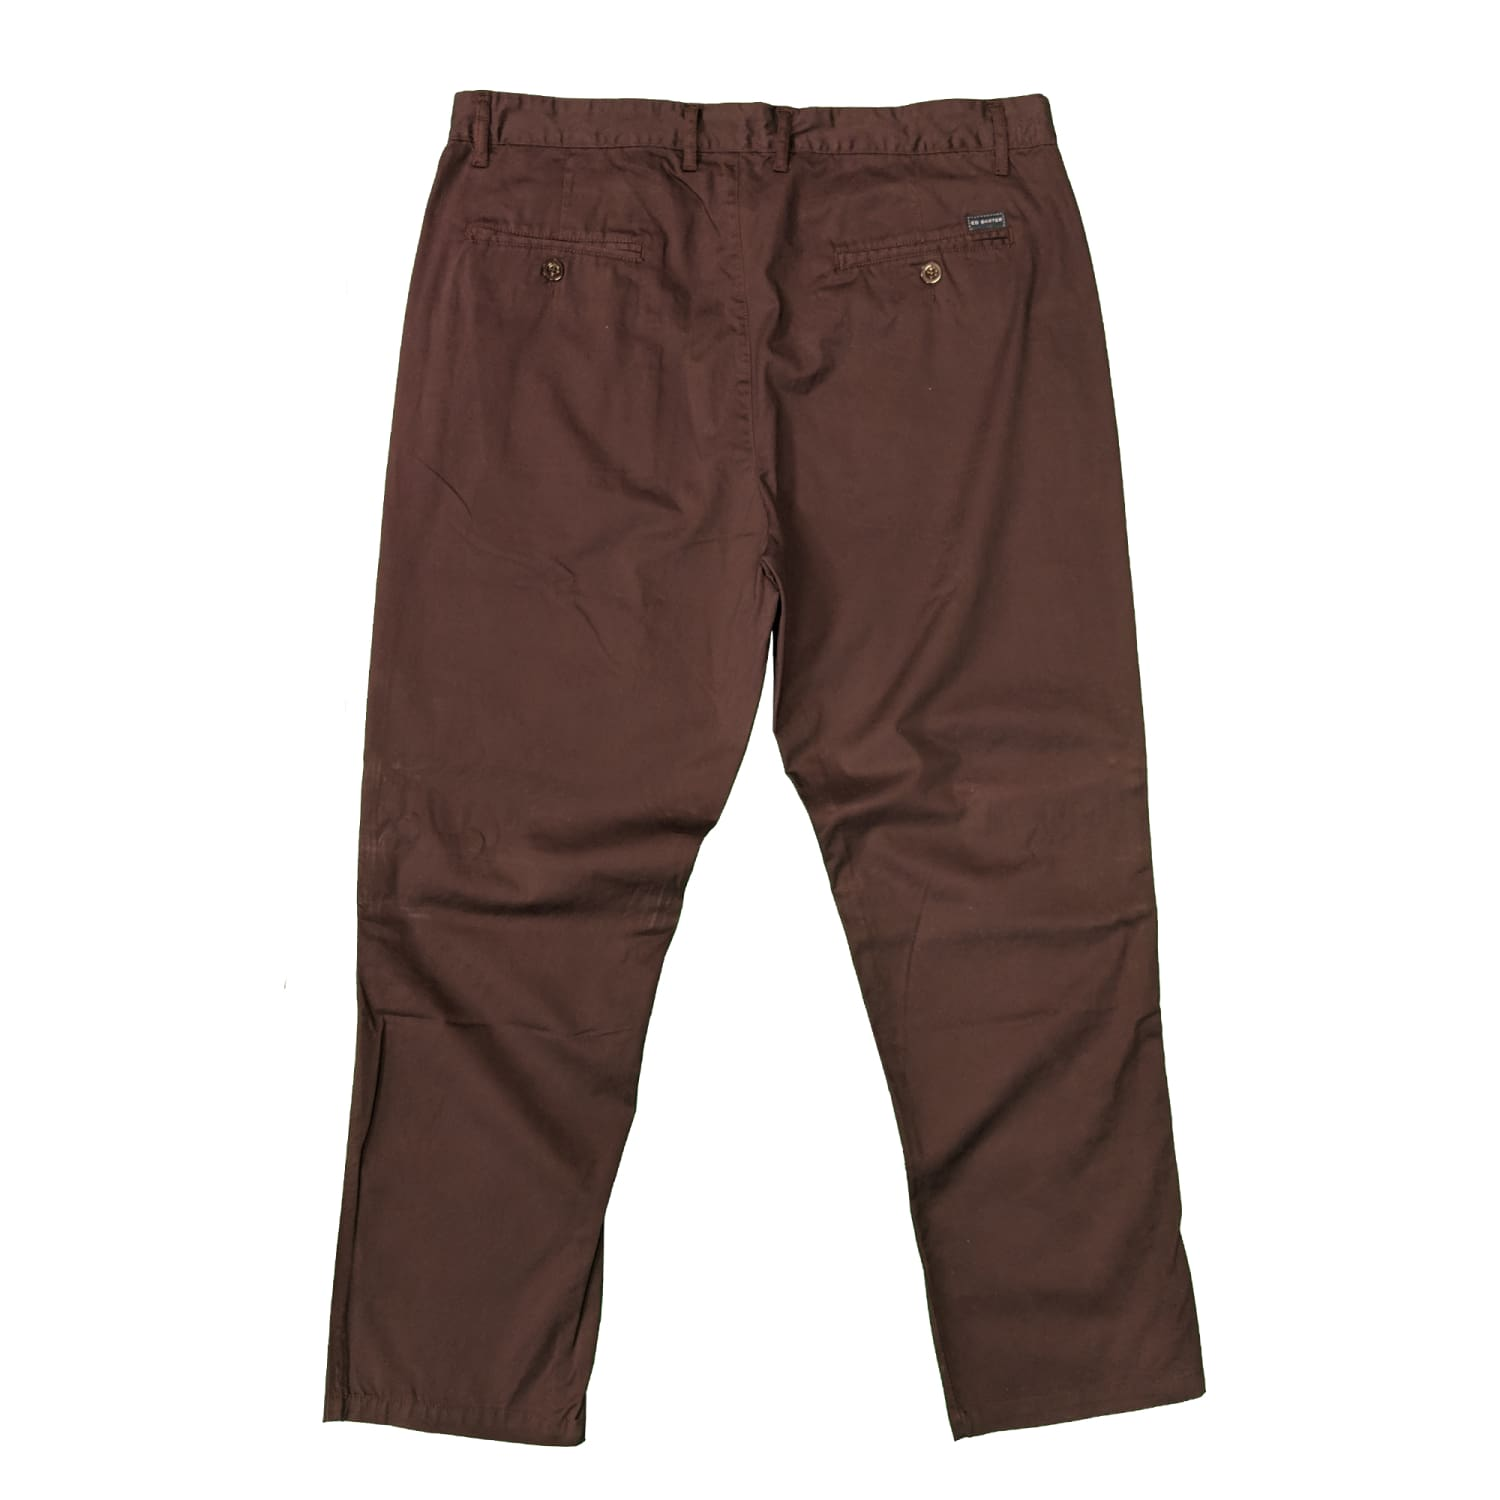 Ed Baxter Chinos - EB281 - Huckleberry 1